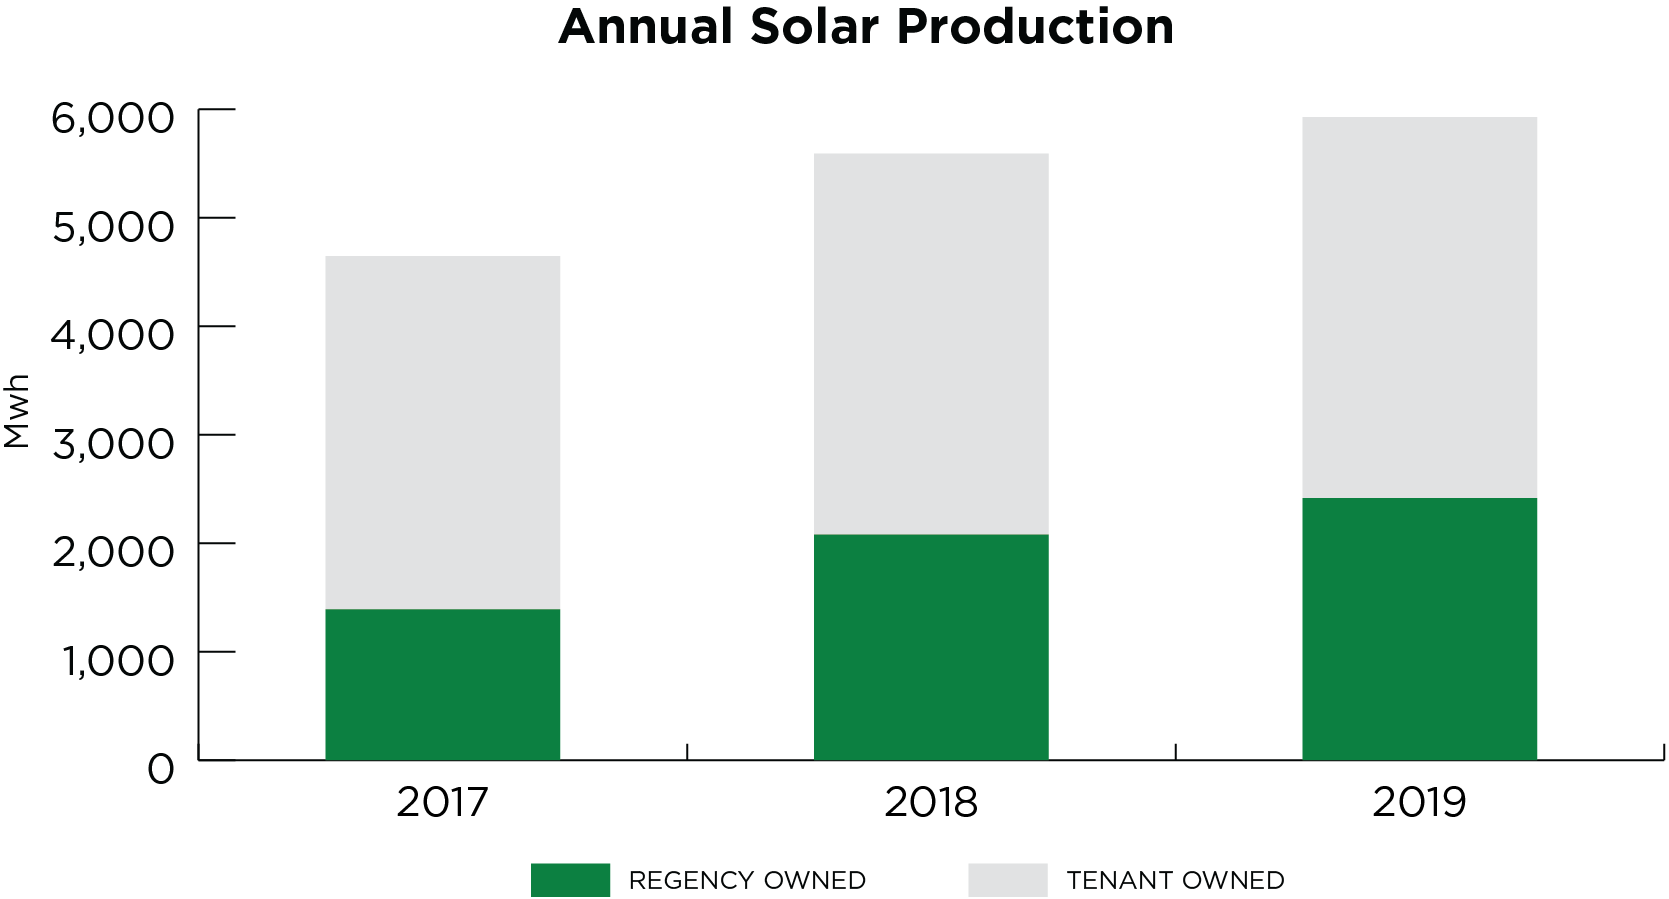 Chart titled Annual Solar Production with the following statistics in MwH. 2017 1391 Regency Owned, 3255 Tenant Owned. 2018 2079 Regency Owned, 3513 Tenant Owned. 2019 2416 Regency Owned, 3513 Tenant Owned